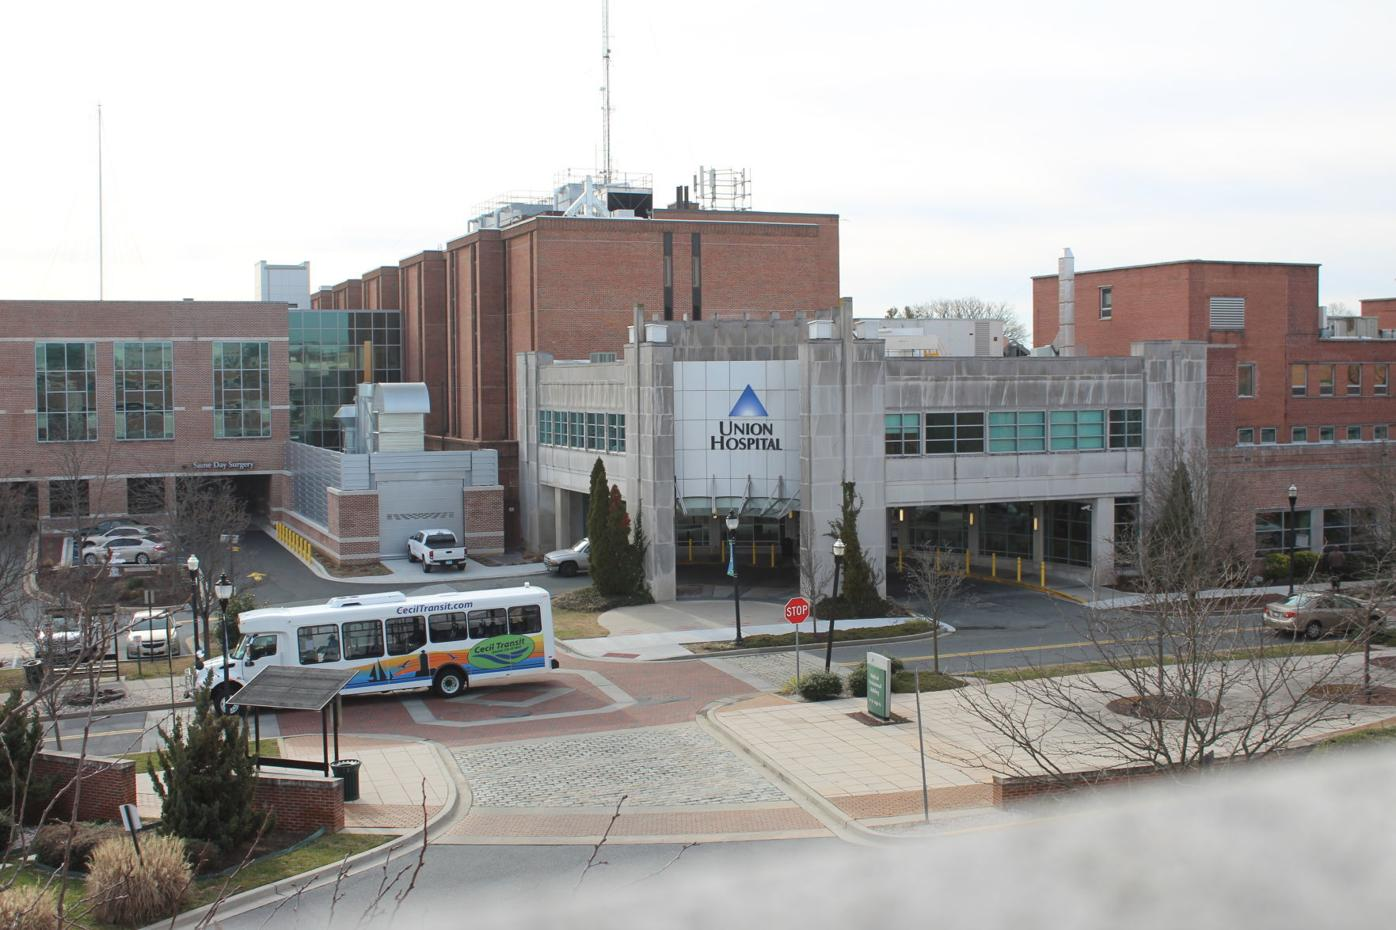 Merger complete with Union Hospital & Christiana